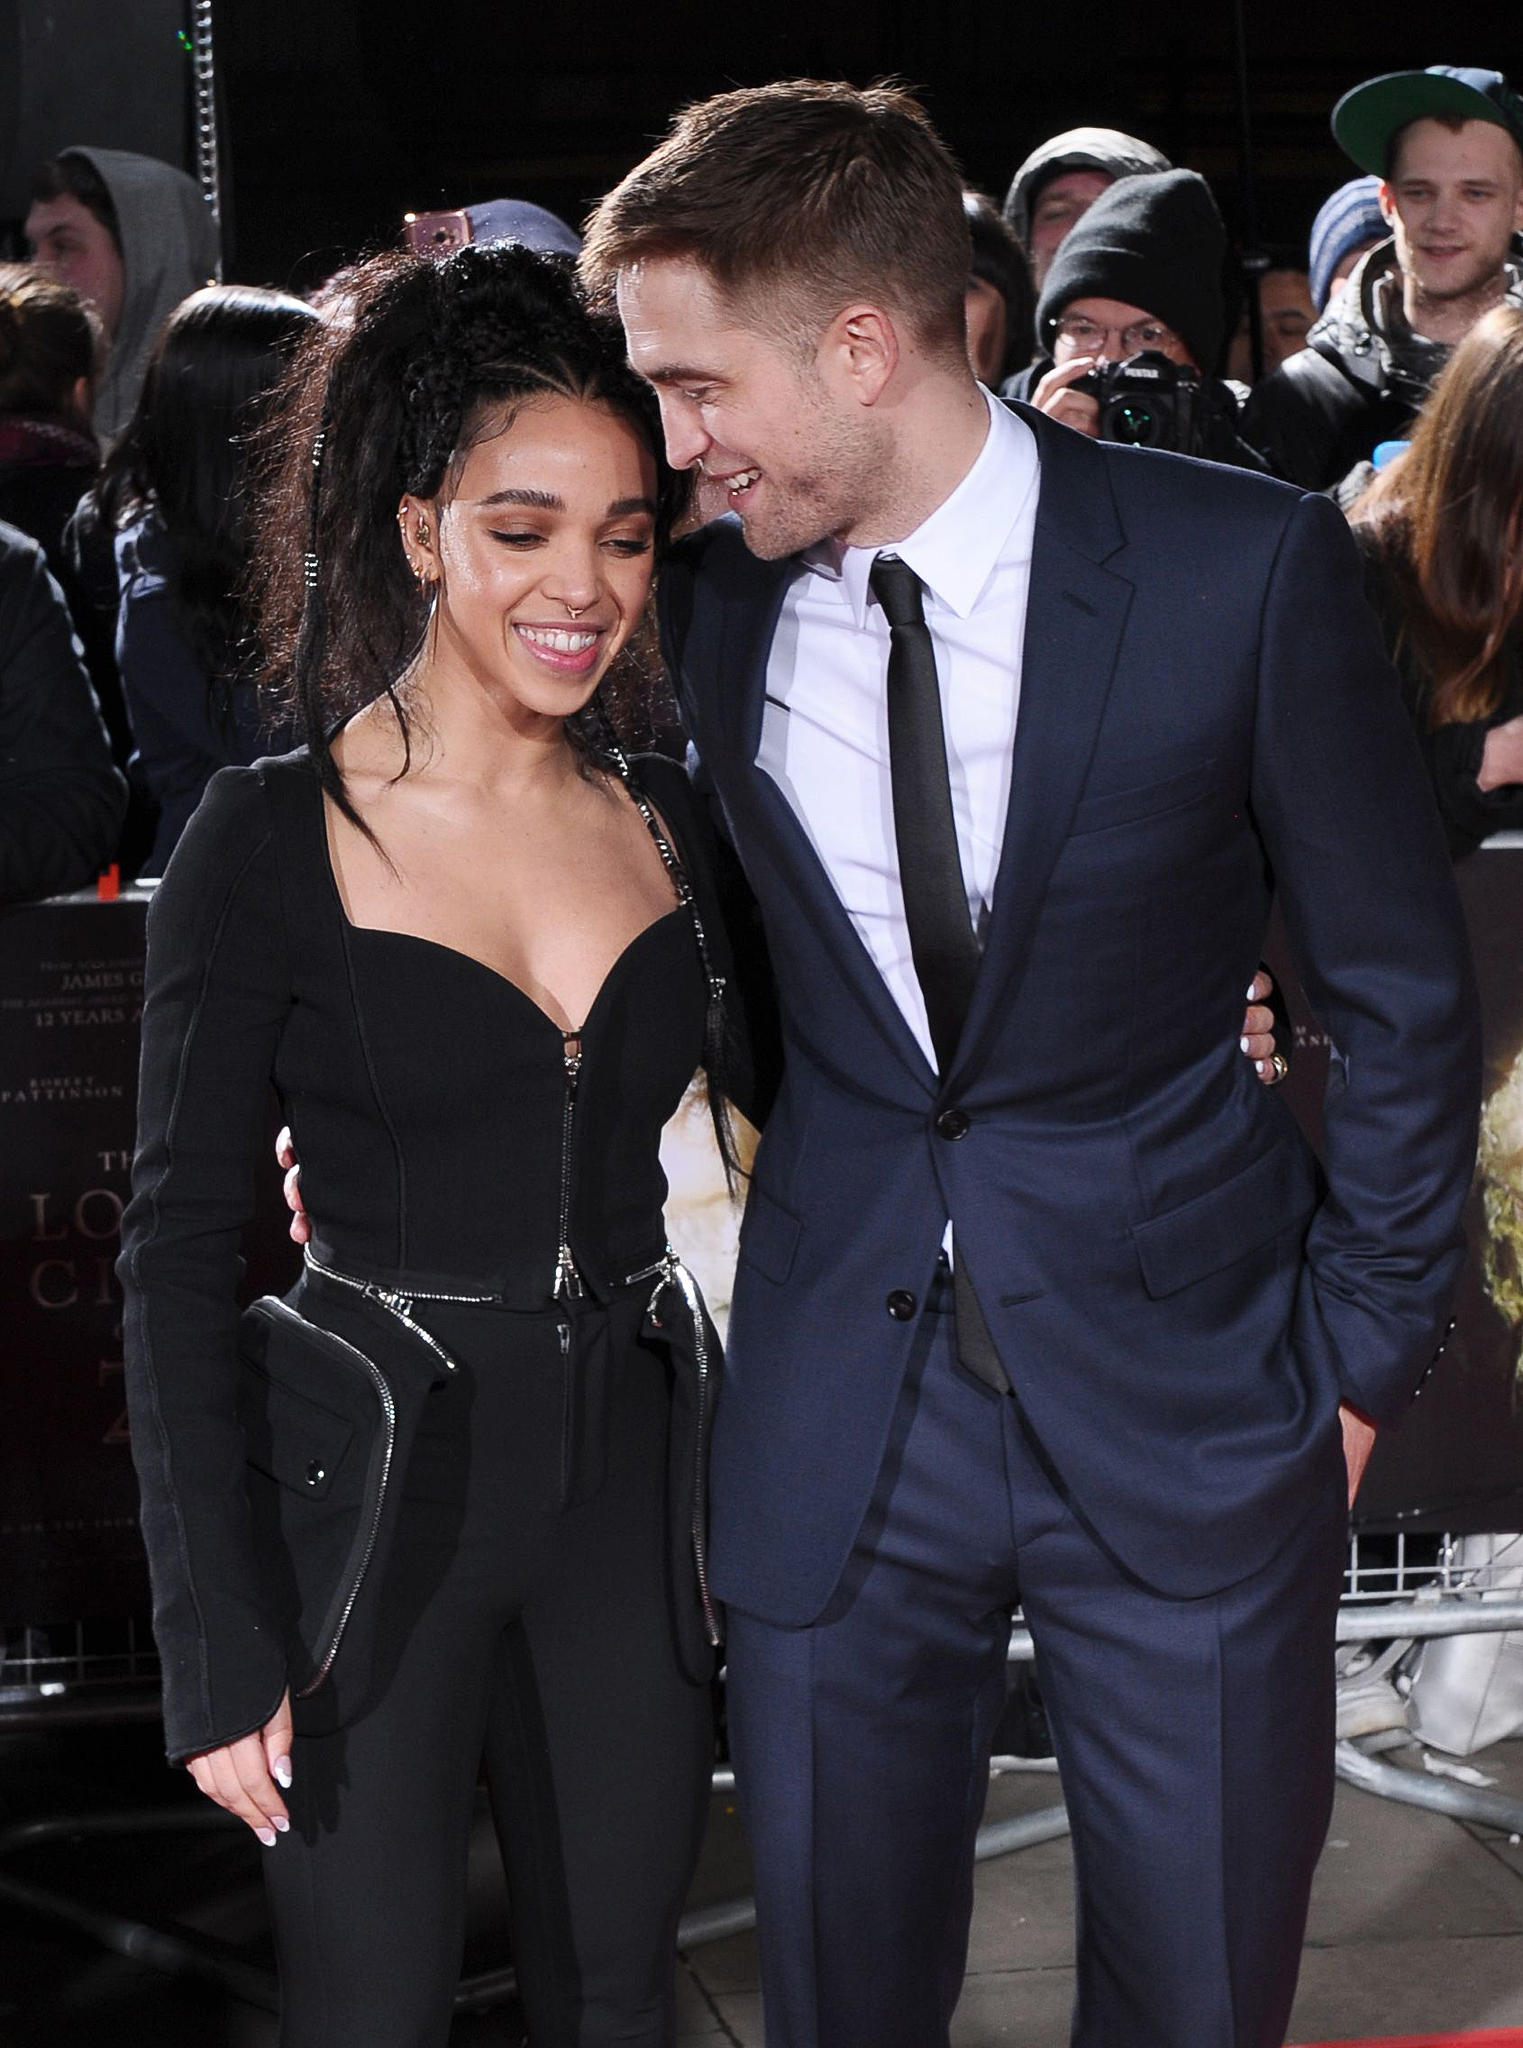 Fka twigs robert pattinson dating anyone 9